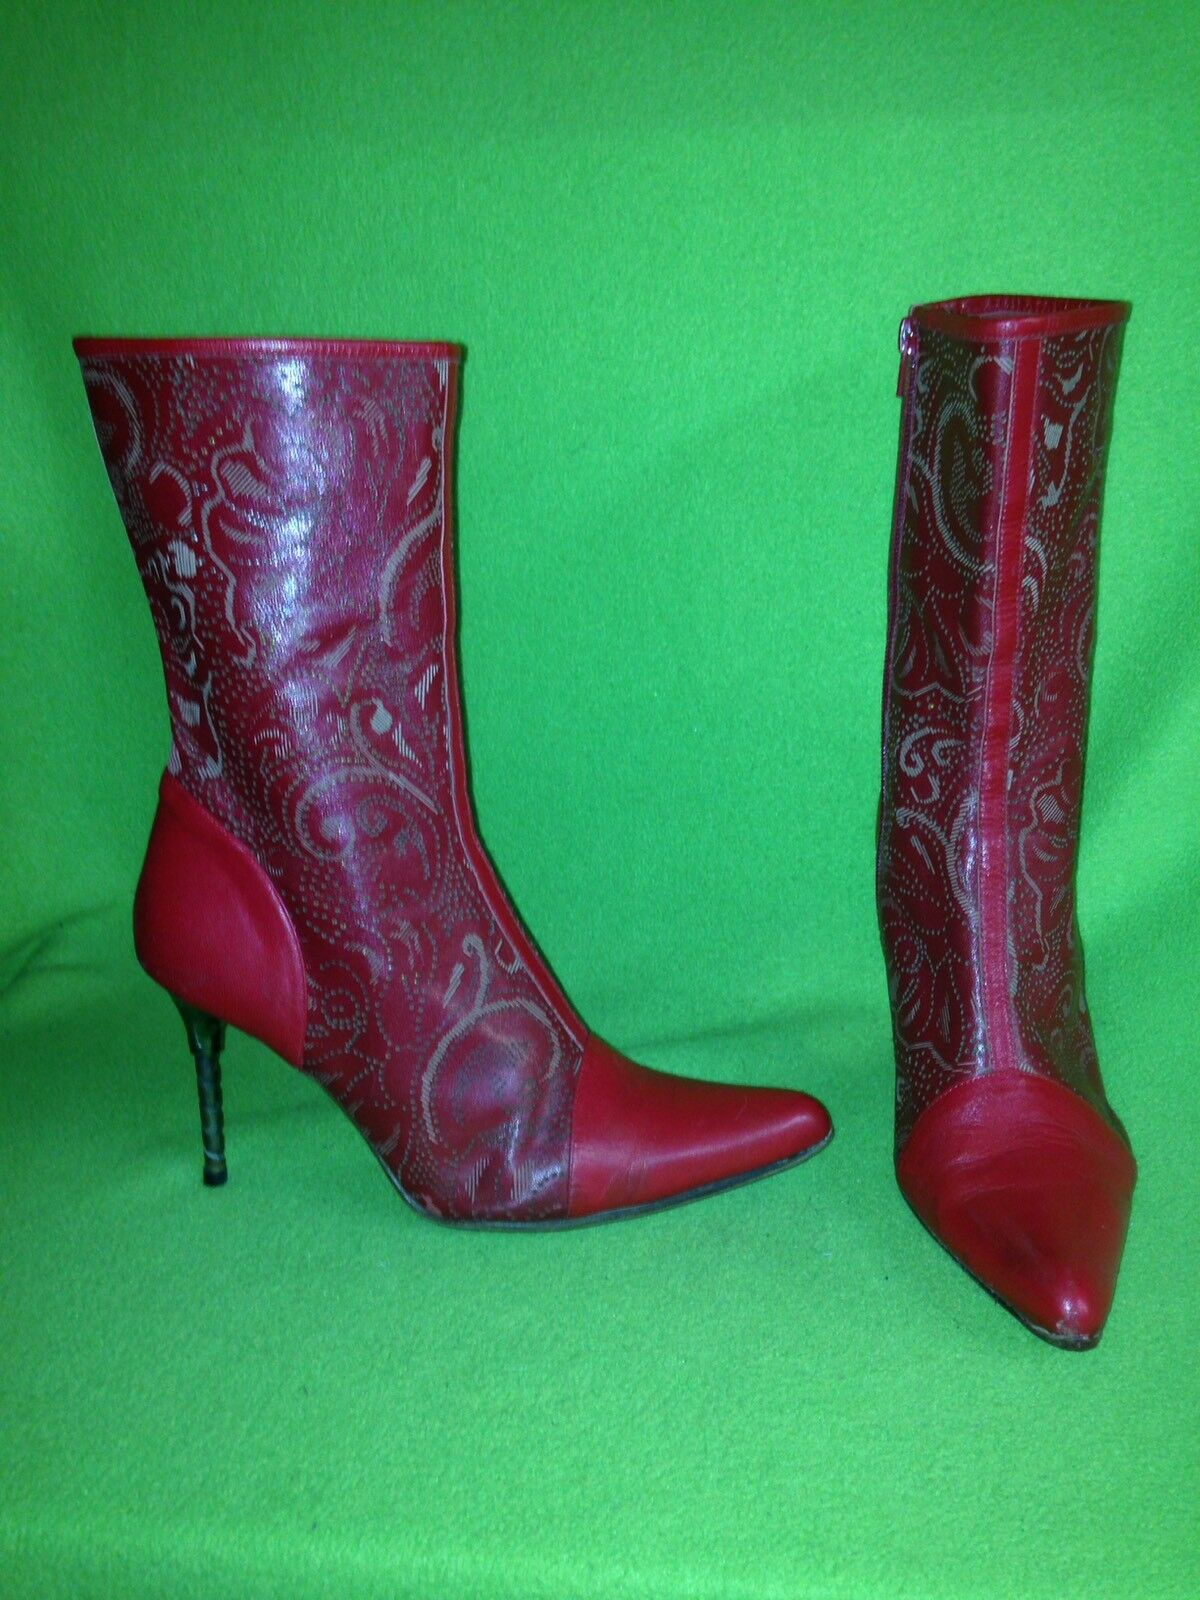 Red Etched & Perforated Beston Mid-Calf Boots with Drill Bit Heel 10